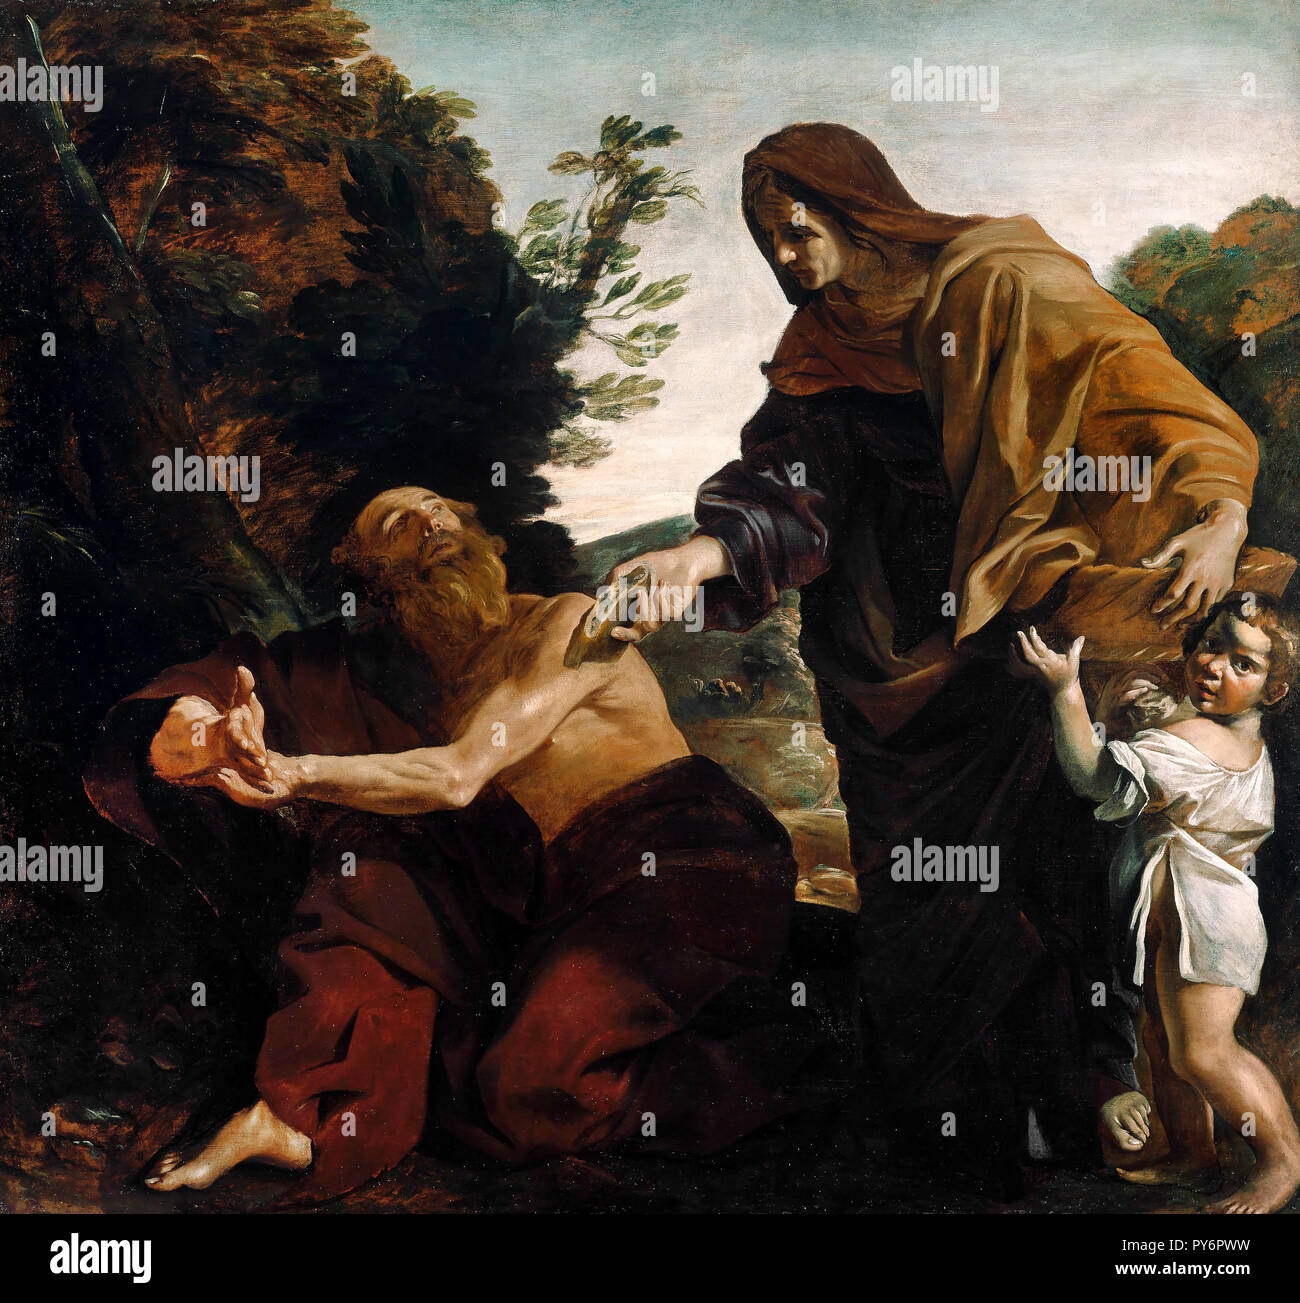 Giovanni Lanfranco, Elijah Receiving Bread from the Widow of Zarephath, Circa 1621-1624 Oil on canvas, The J. Paul Getty Museum, Los Angeles, USA. - Stock Image